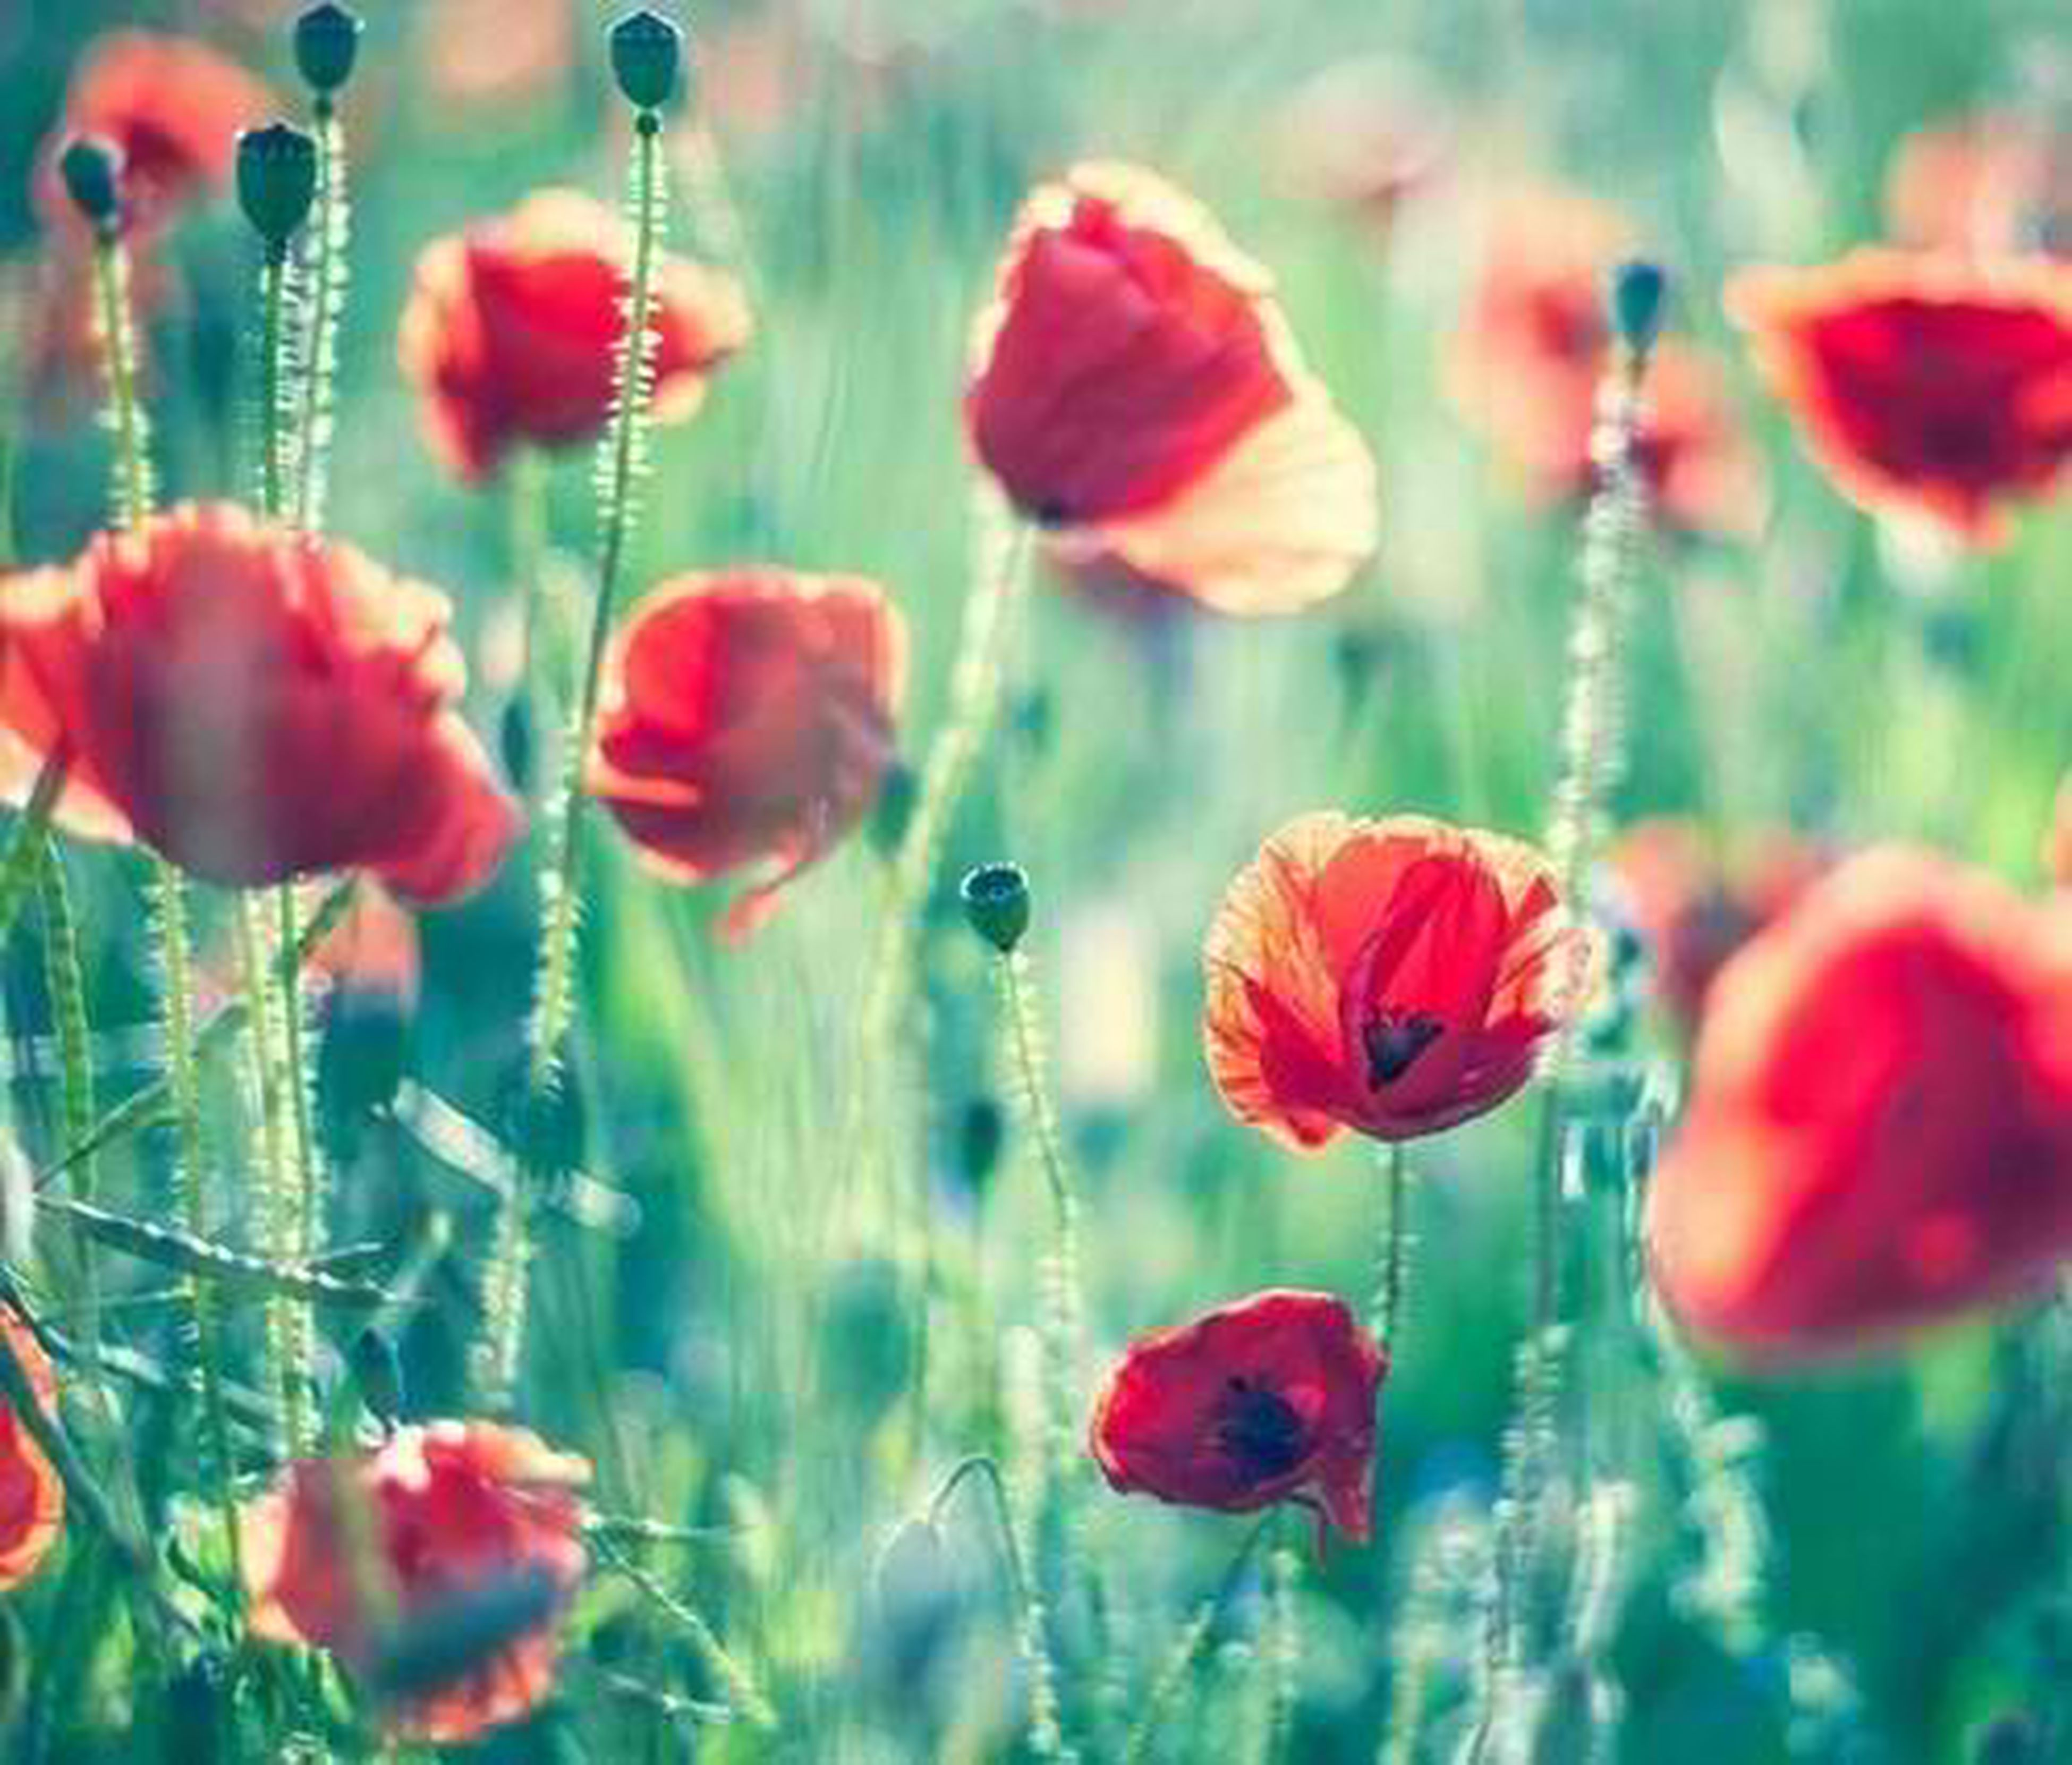 flower, freshness, growth, fragility, petal, red, beauty in nature, plant, nature, flower head, stem, blooming, tulip, bud, focus on foreground, close-up, poppy, field, water, in bloom